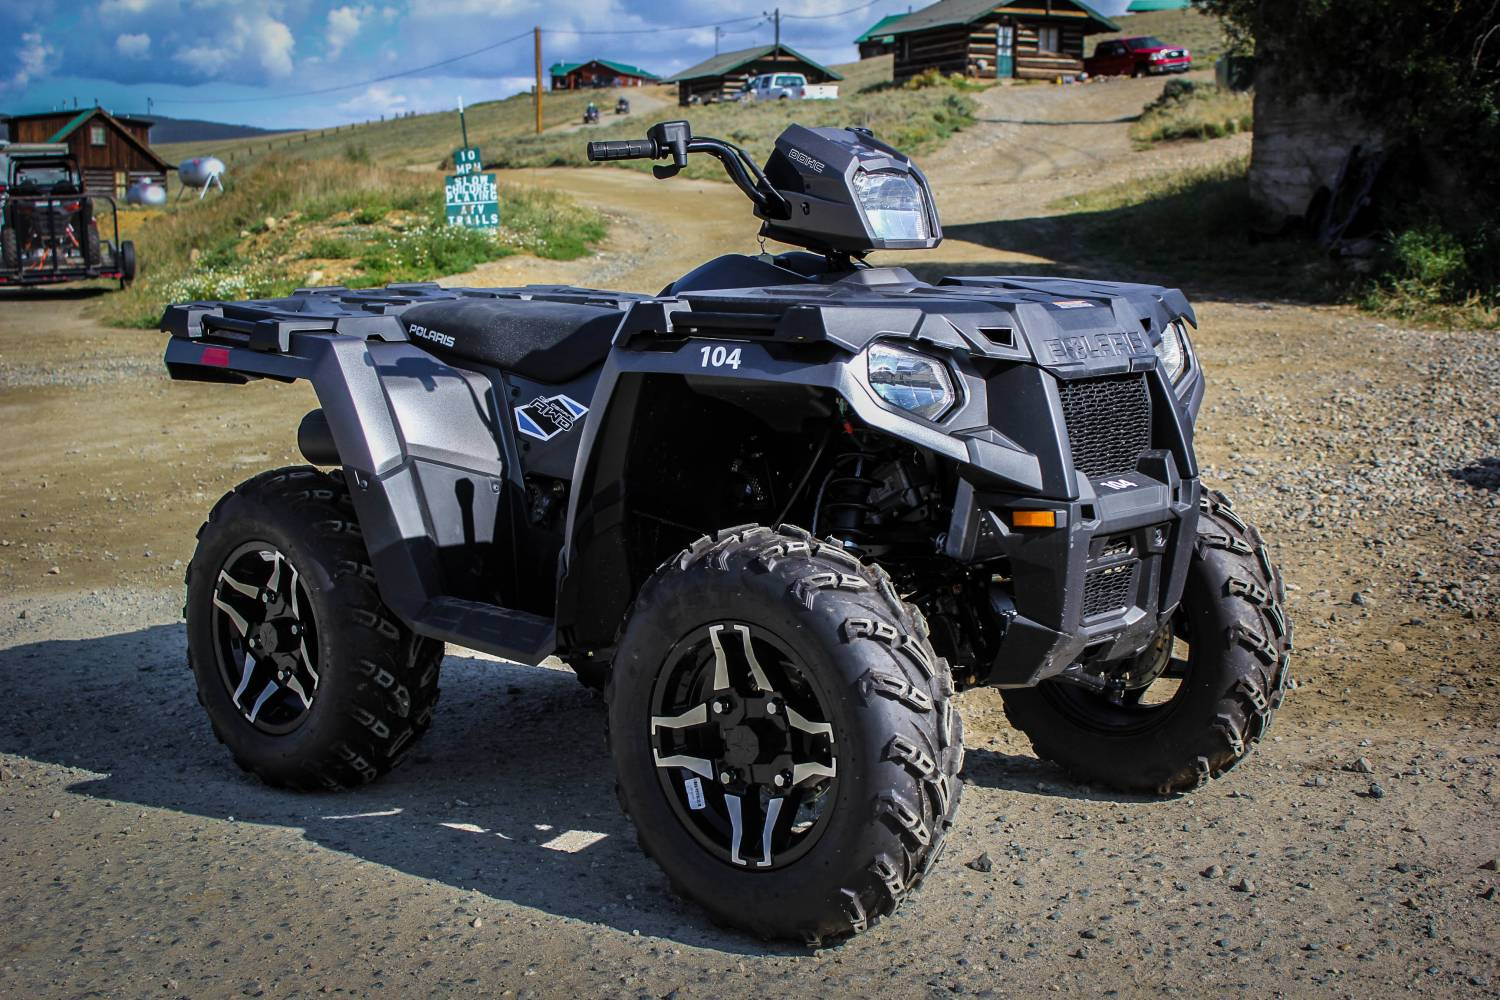 Where to Find Good Replacement Parts for a 4-Wheeler ATV?